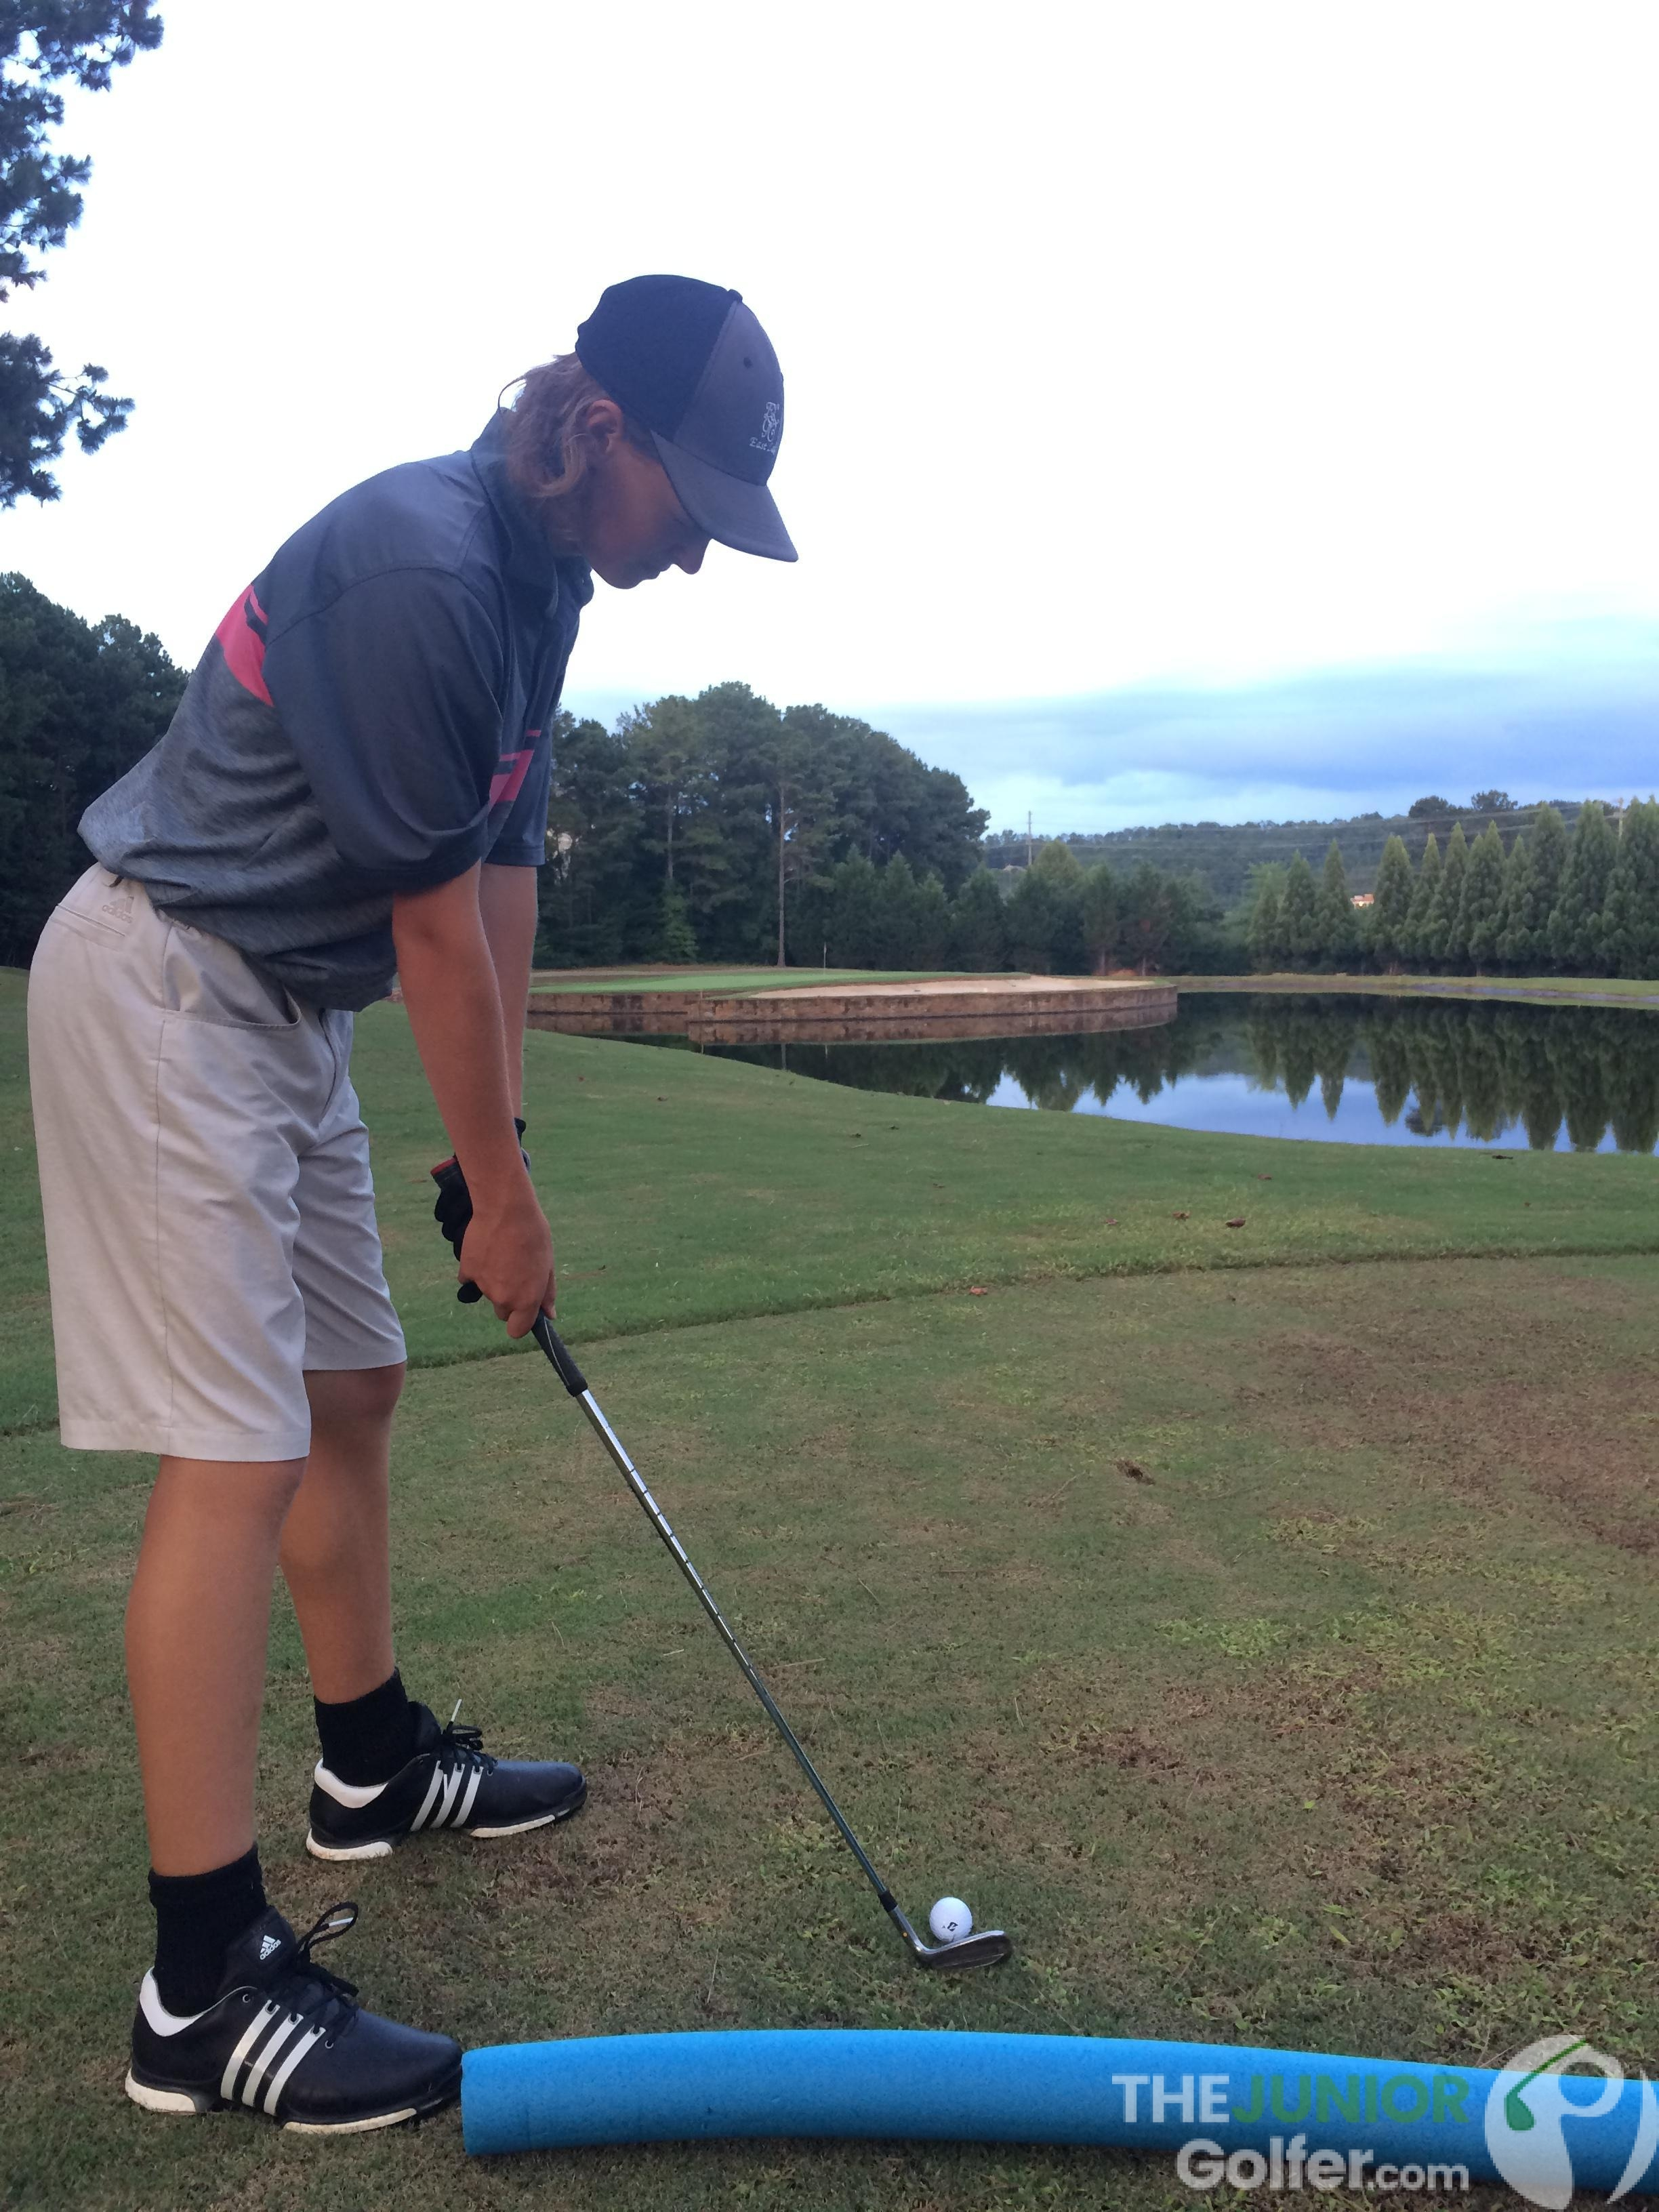 Best golf training aids for juniors  Most popular and